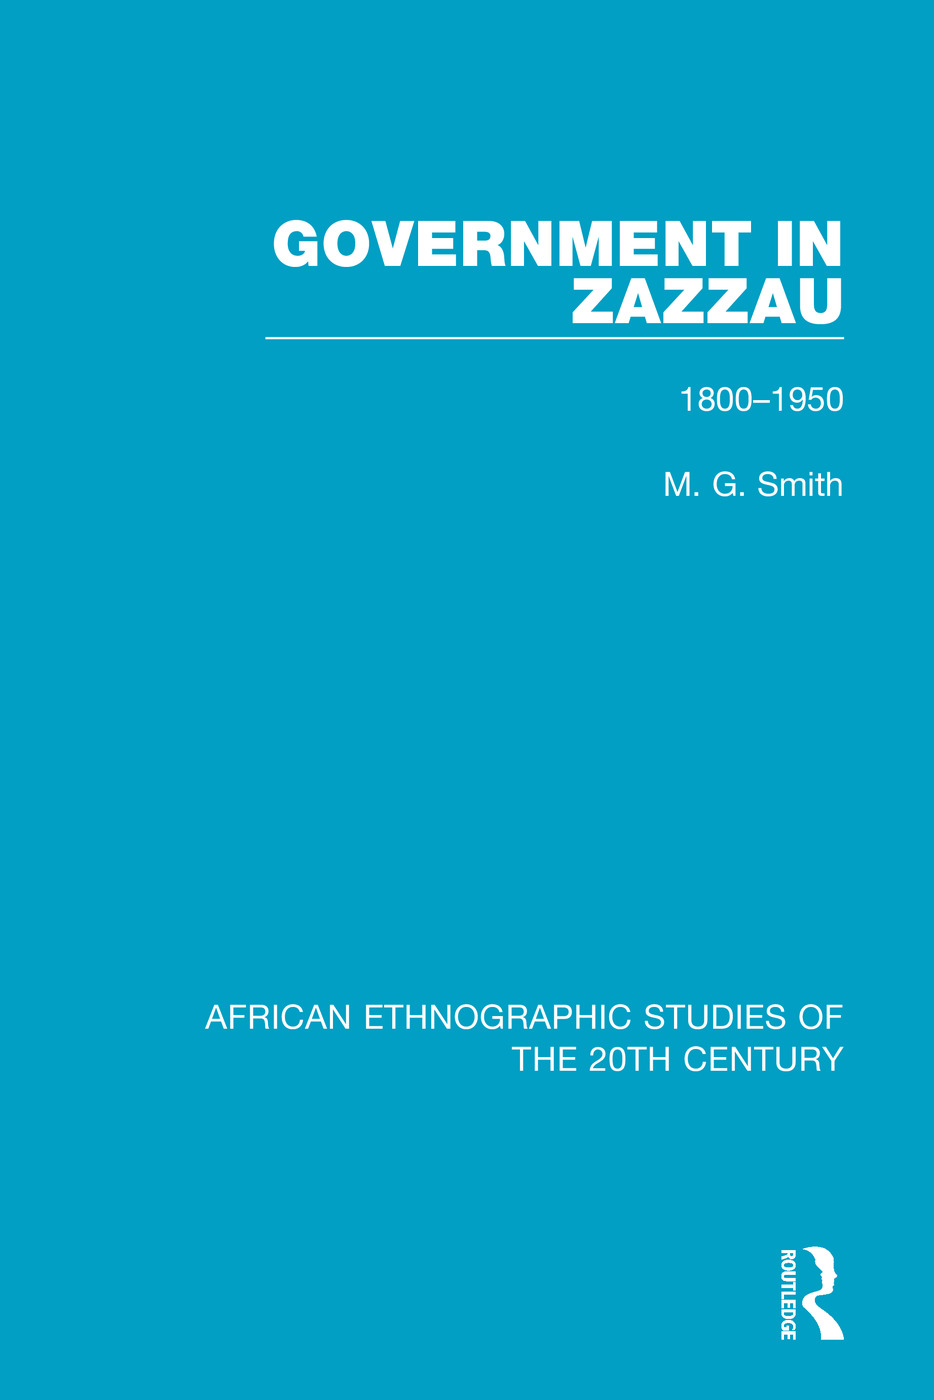 Government in Zazzau: 1800-1950 book cover